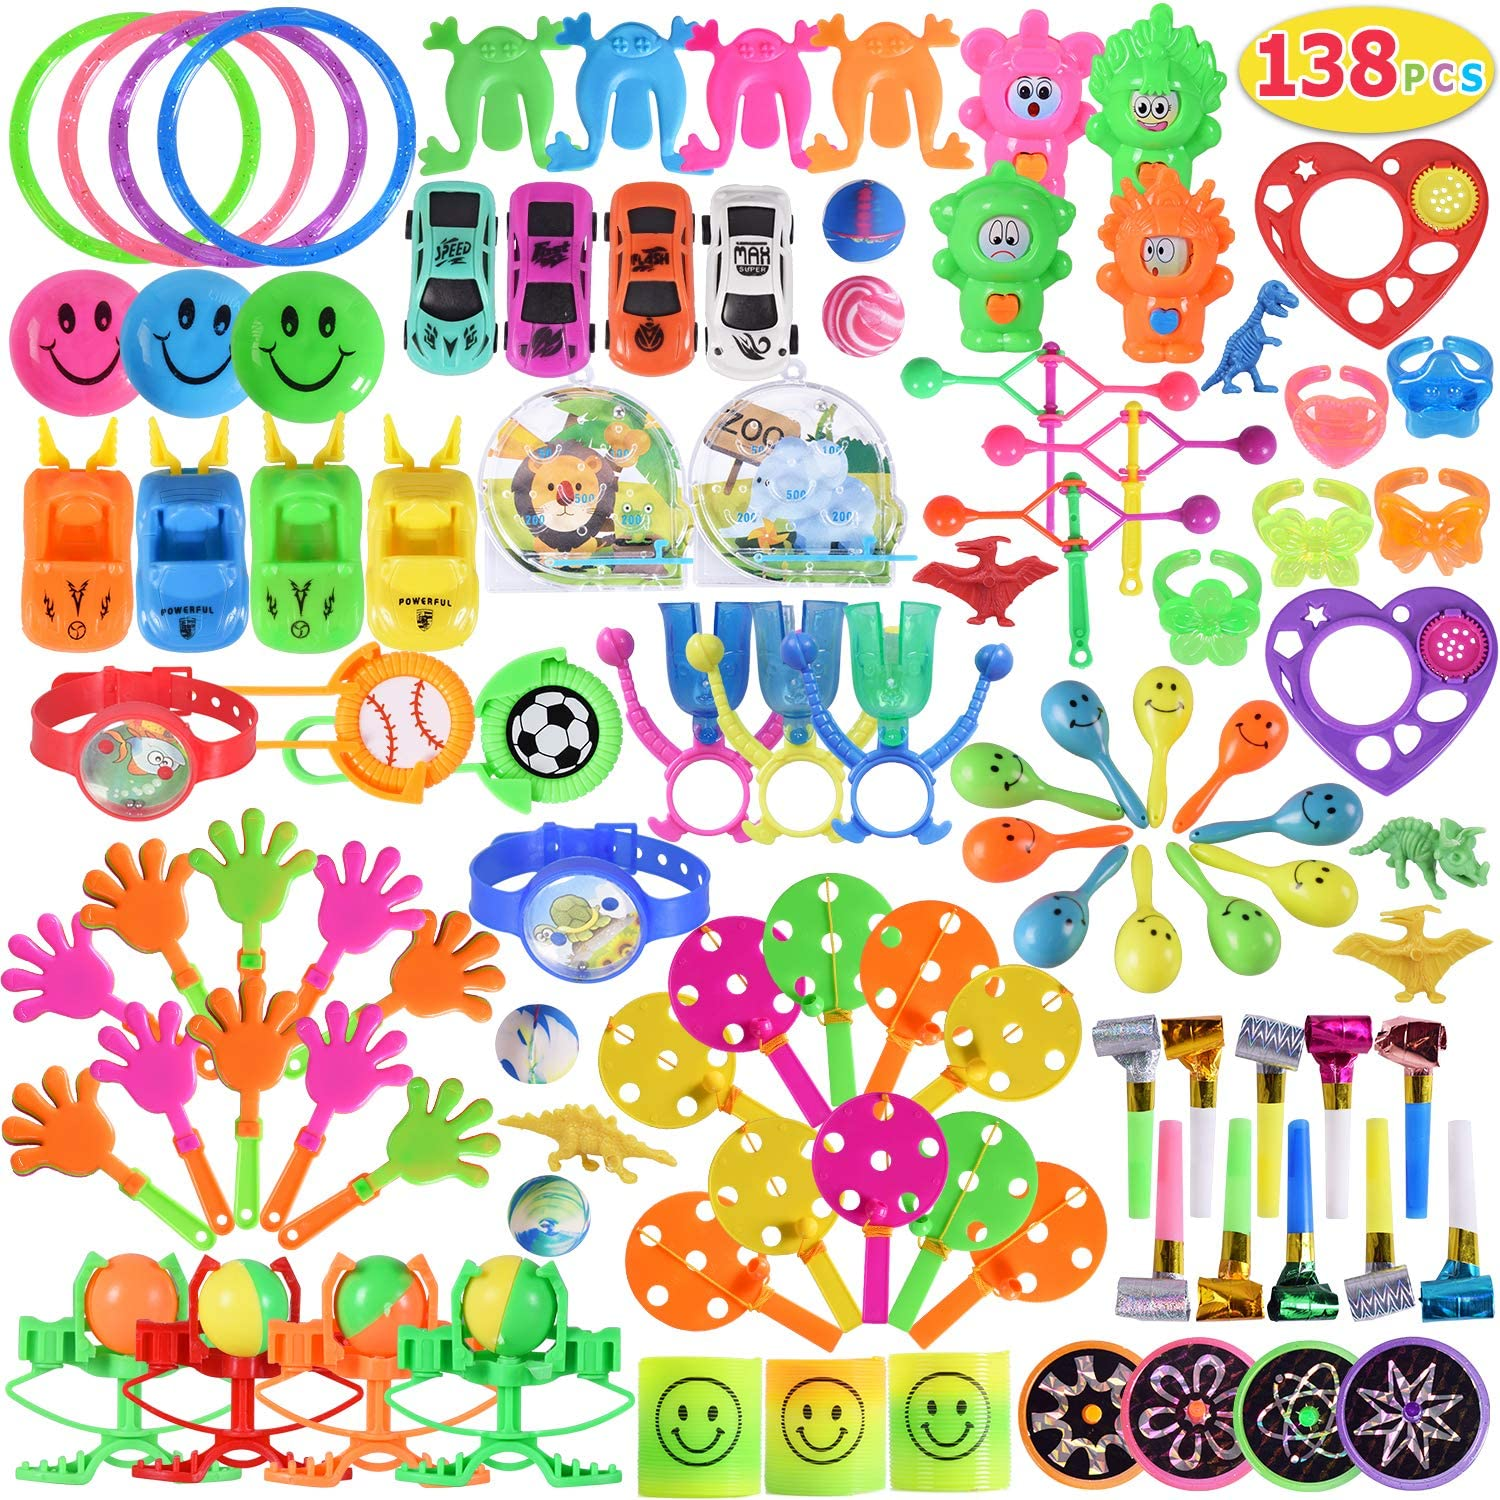 Max Fun 138pcs Random Color Assortment Toys for Kids Birthday Party Favors Prizes Box Toy Assortment Classroom